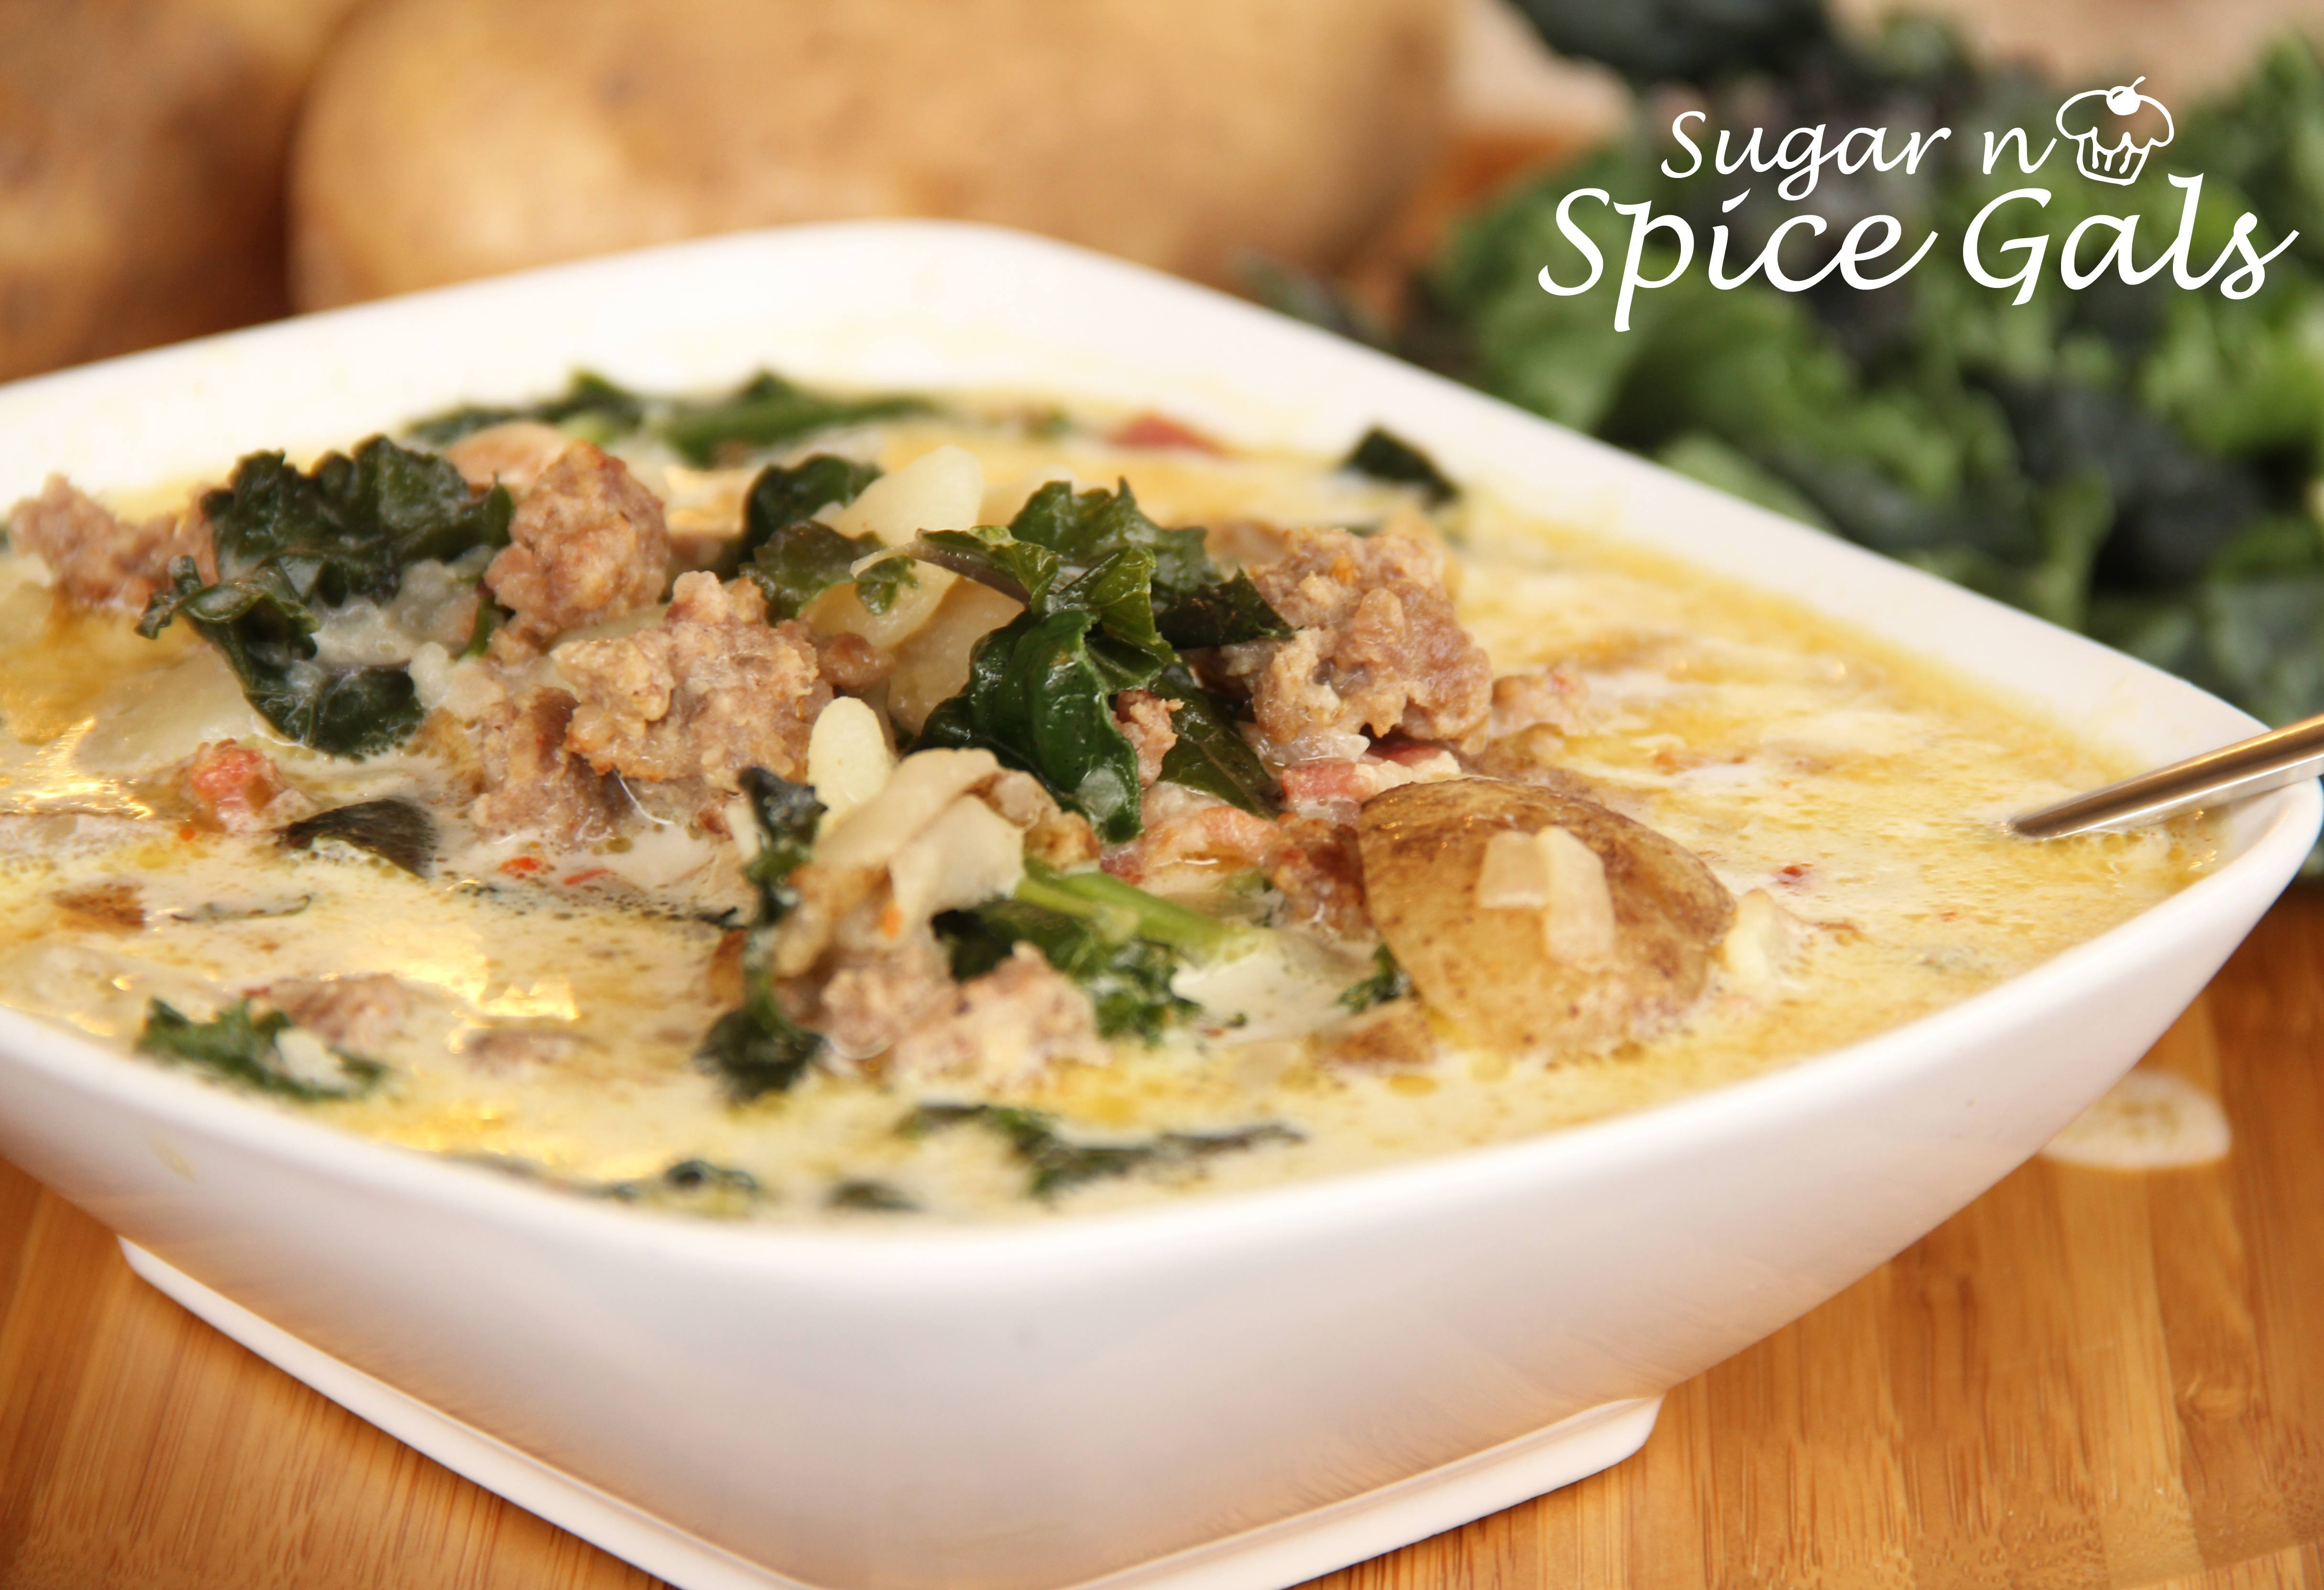 Zuppa toscana soup olive garden copy cat sugar n - What kind of soup does olive garden have ...